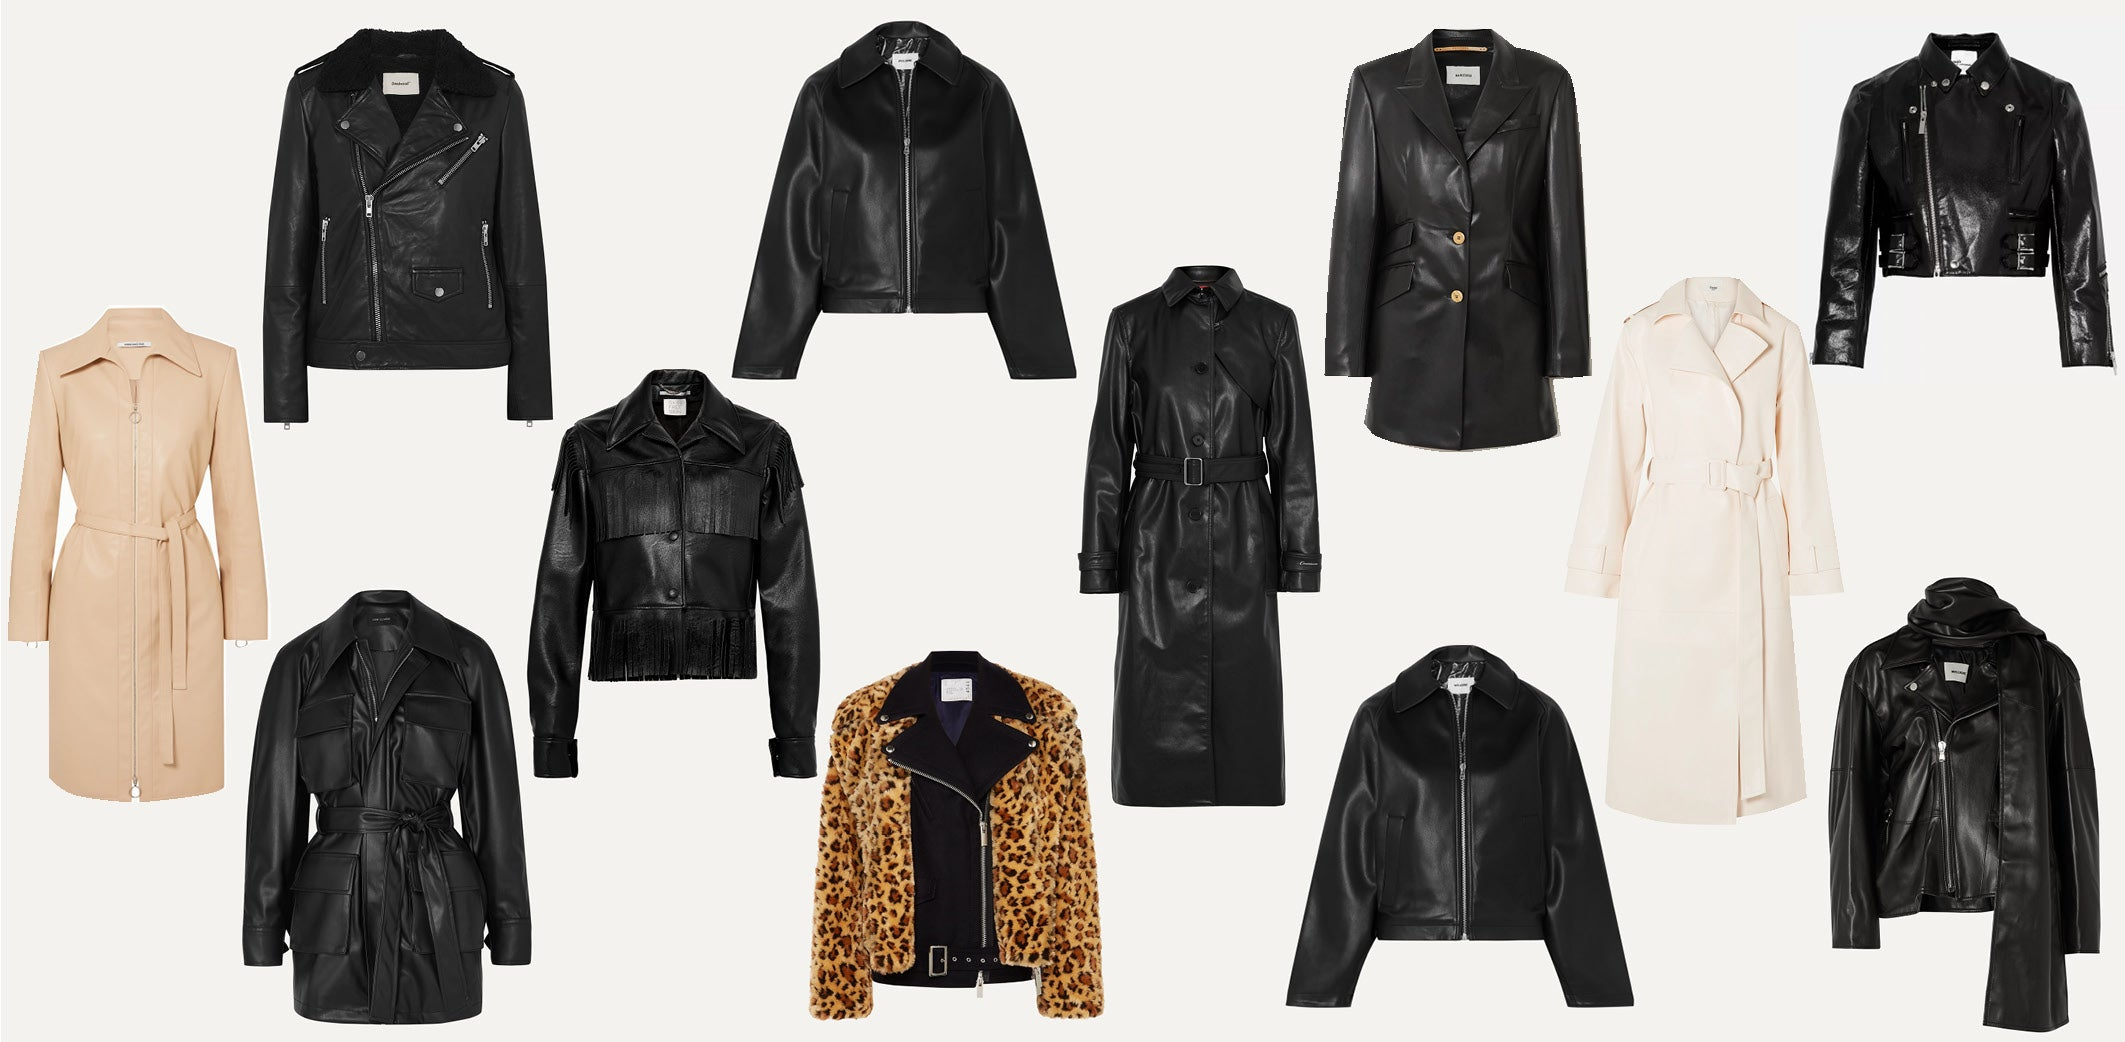 Vegan Leather Jackets - The Best Classic and Timeless Styles of Faux Leather Jackets